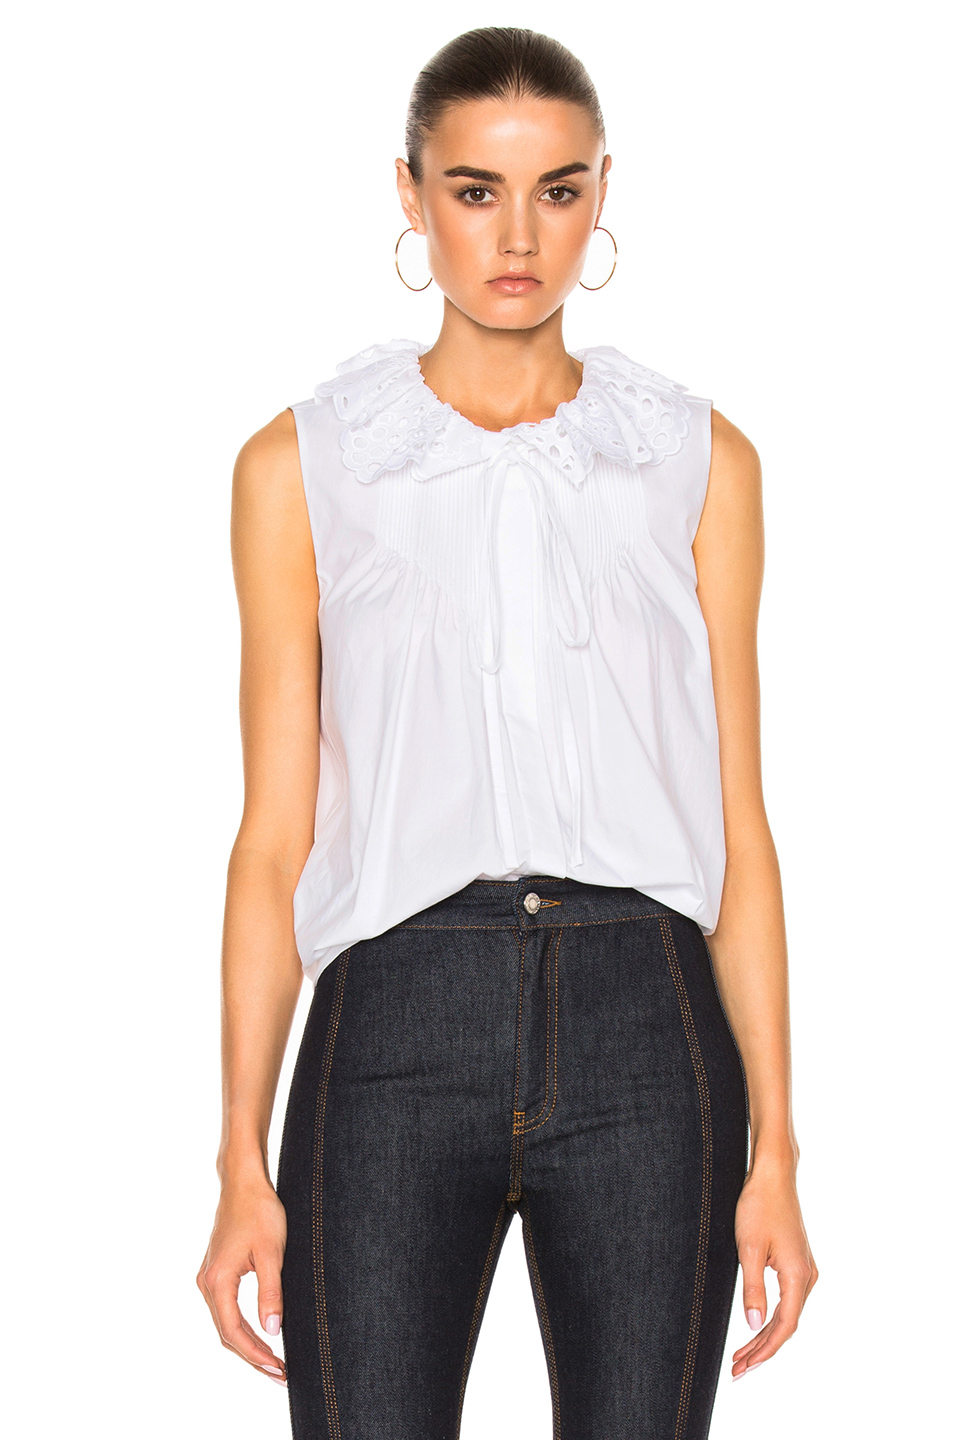 Chloé Cottons CHLOE CRUSHED COTTON POPELINE SLEEVELESS TOP IN WHITE